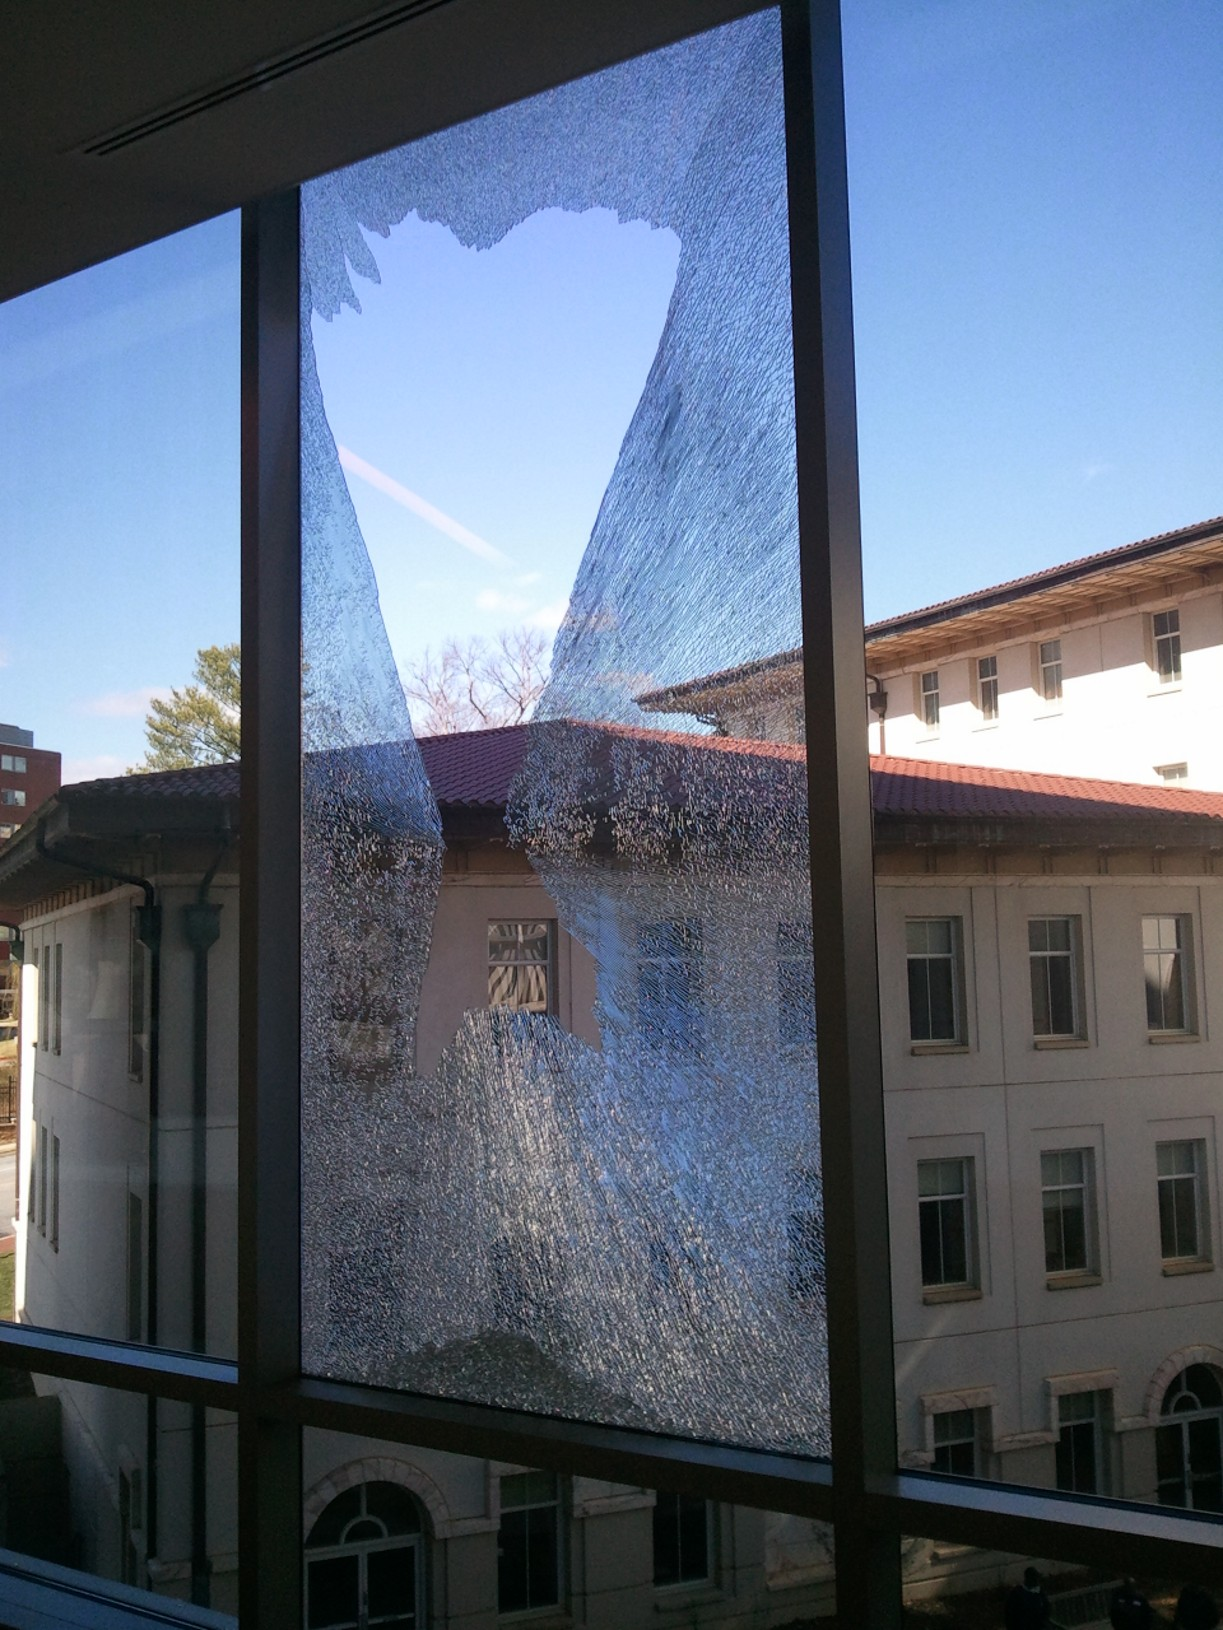 Spontaneous Glass Breakage Why It Happens And What To Do